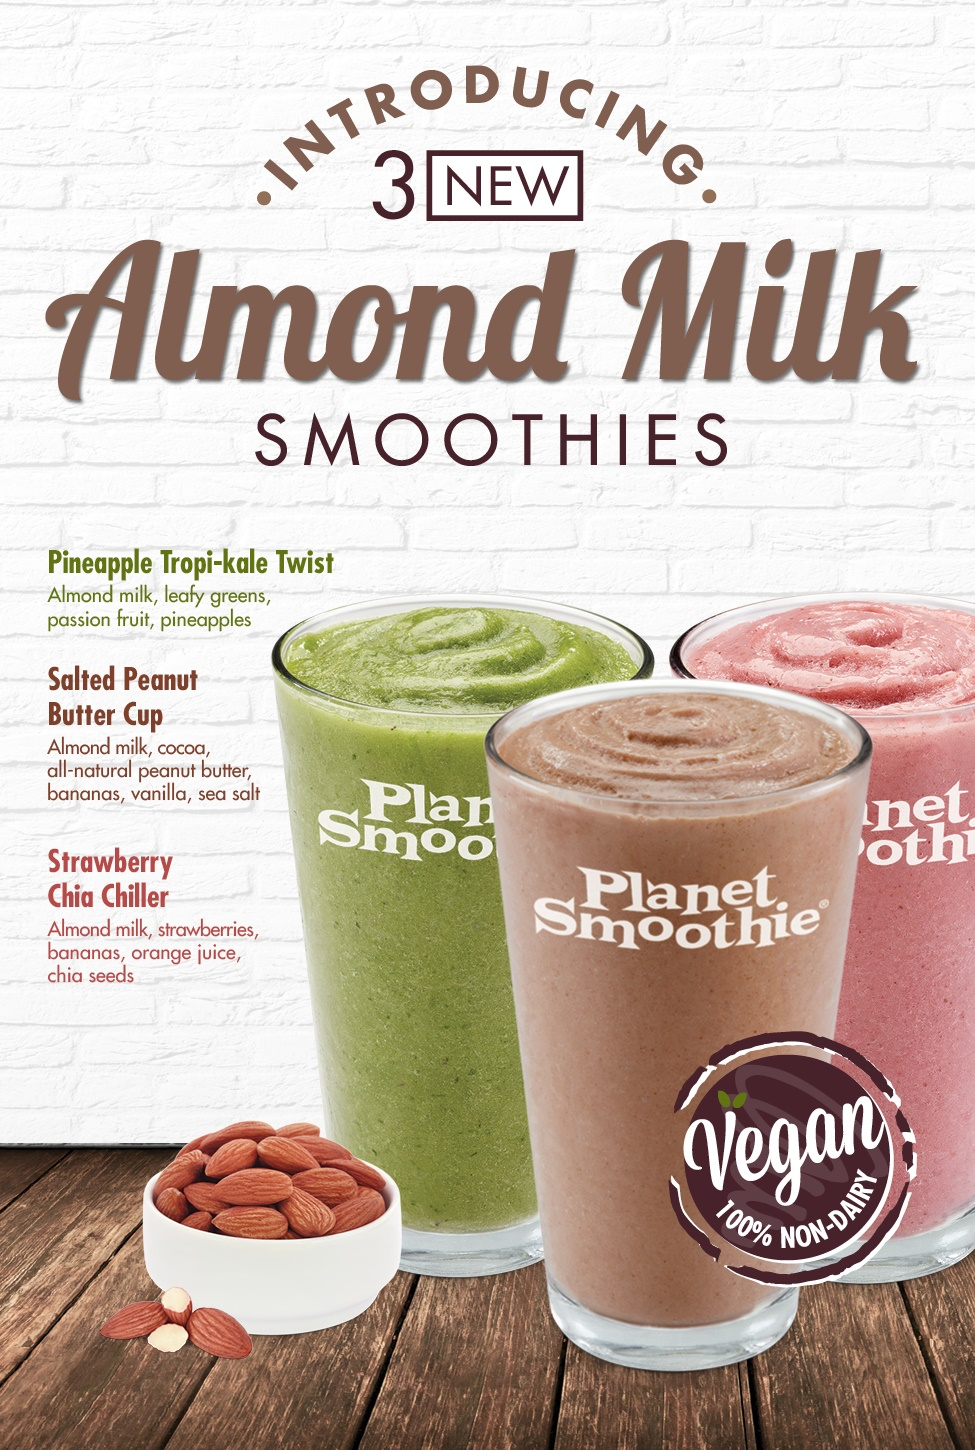 Planet Smoothie launches Dairy-Free & Vegan Smoothies made with Almond Milk